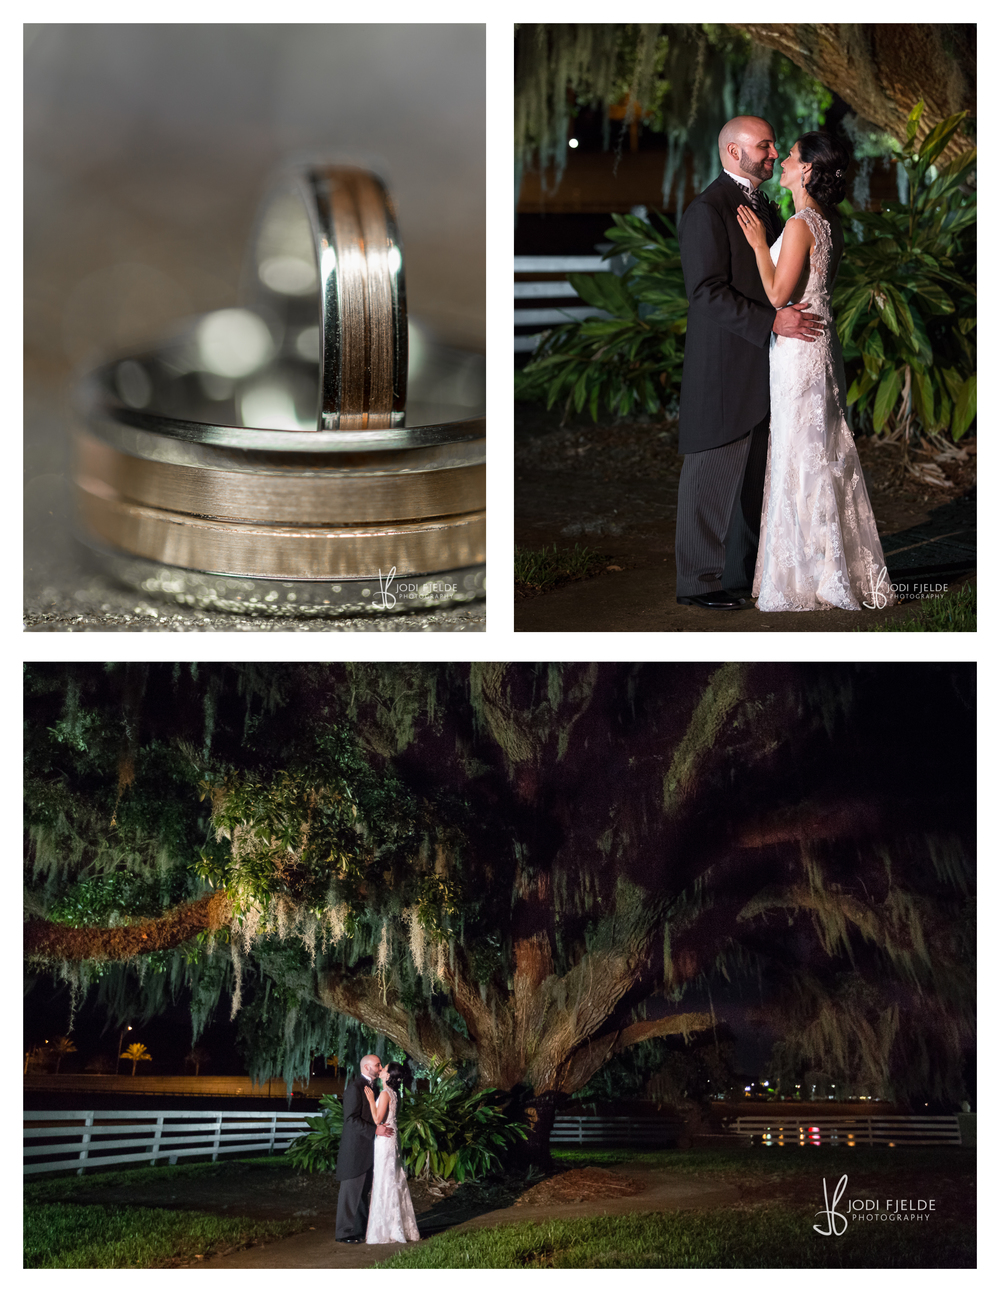 Highland_Manor_Apopka_Florida_wedding_Jackie_&_Tim_photography_jodi_Fjelde_photography-37.jpg